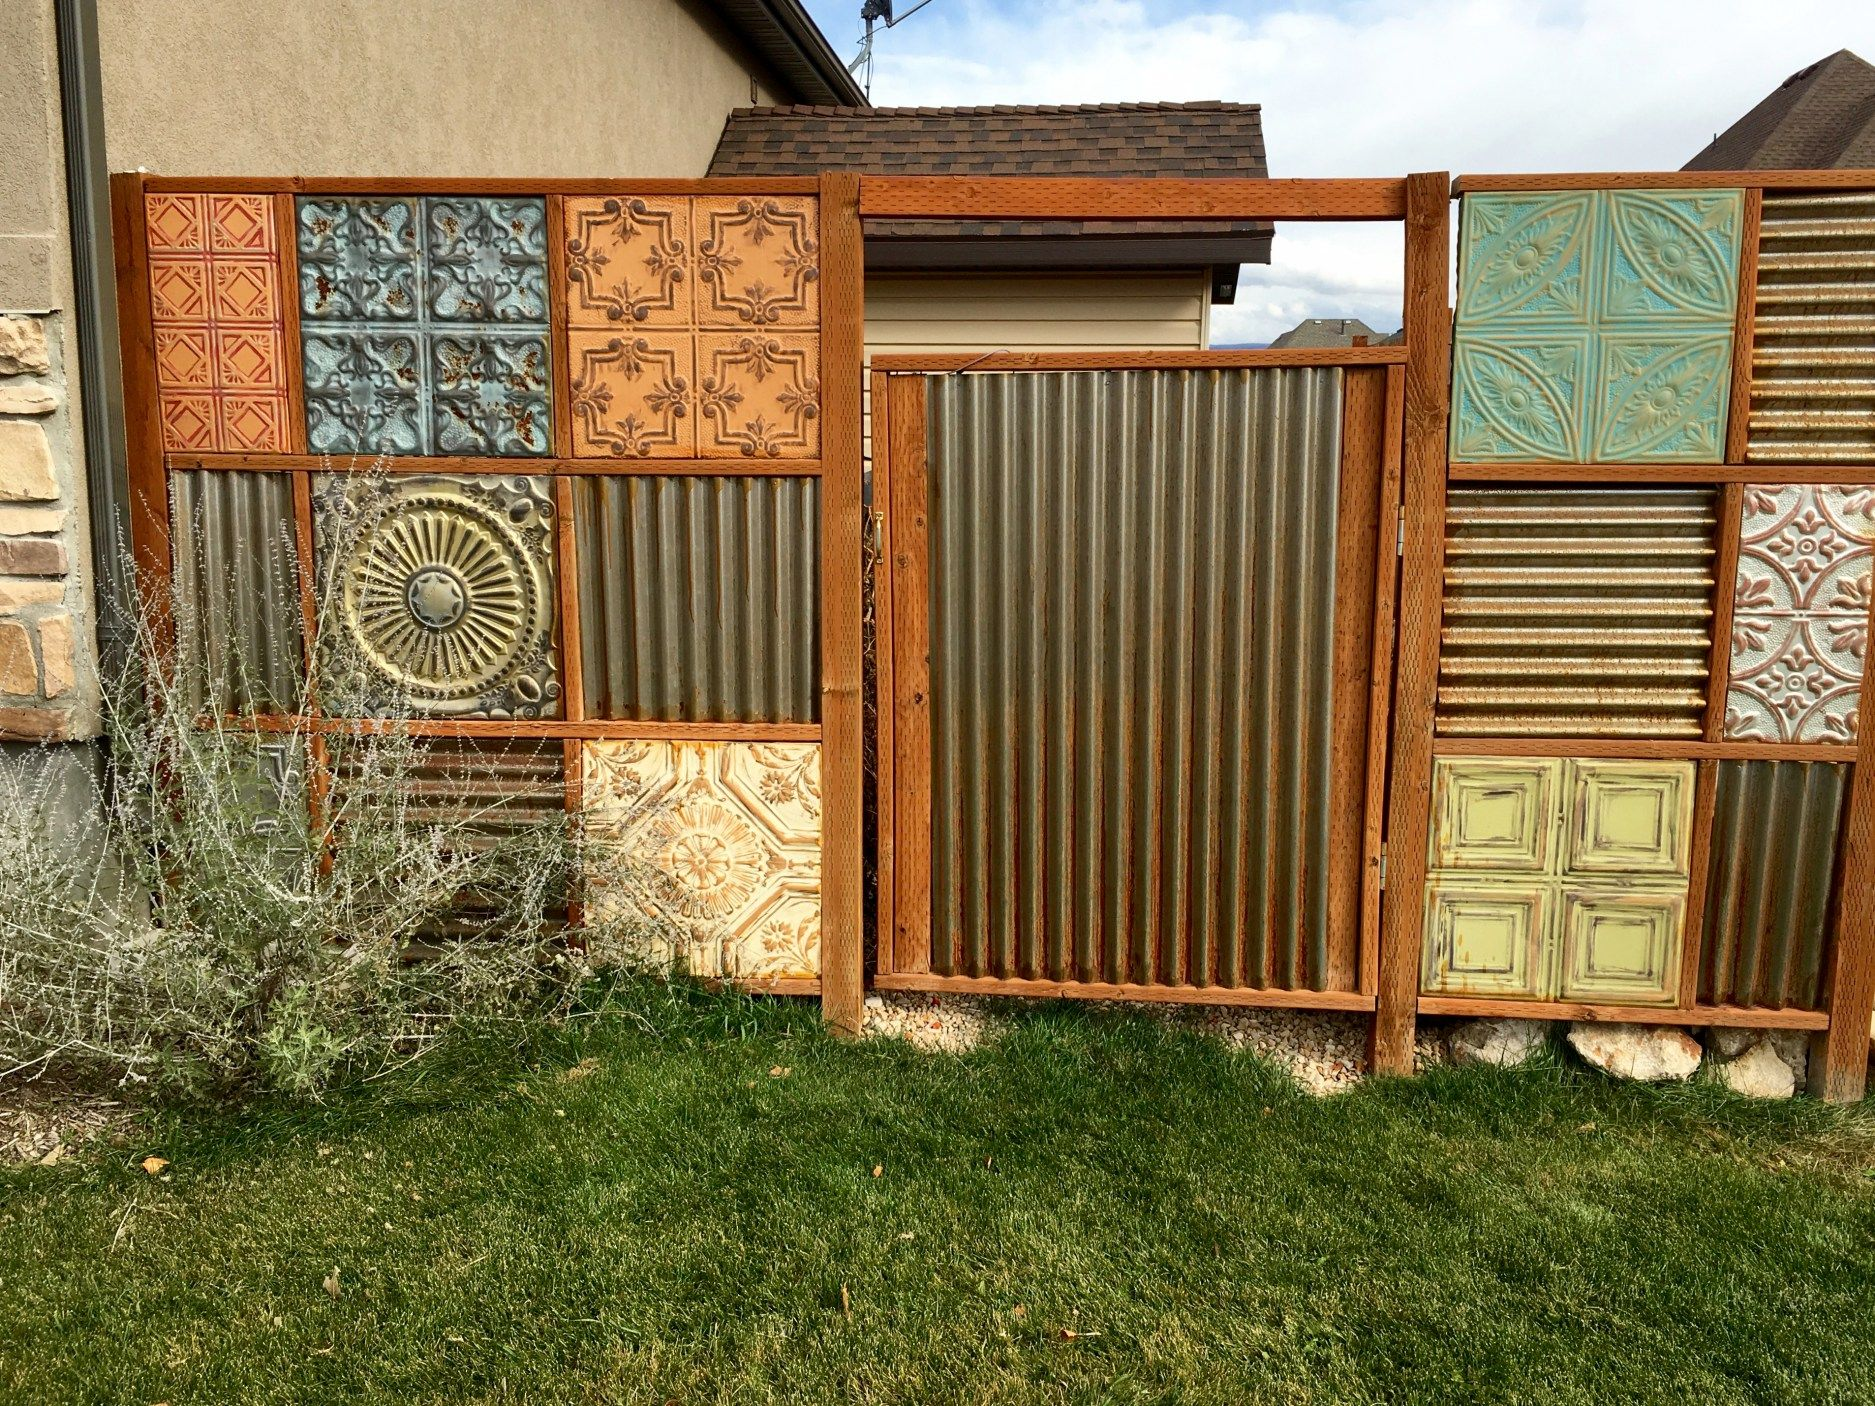 sheet metal privacy fence. Corrugated Metal Fence Update, 3 Years Old Now, See How The Steel Is Rusting And Showing Off Its Patina. Funky With Ceiling Tile Details Sheet Privacy G